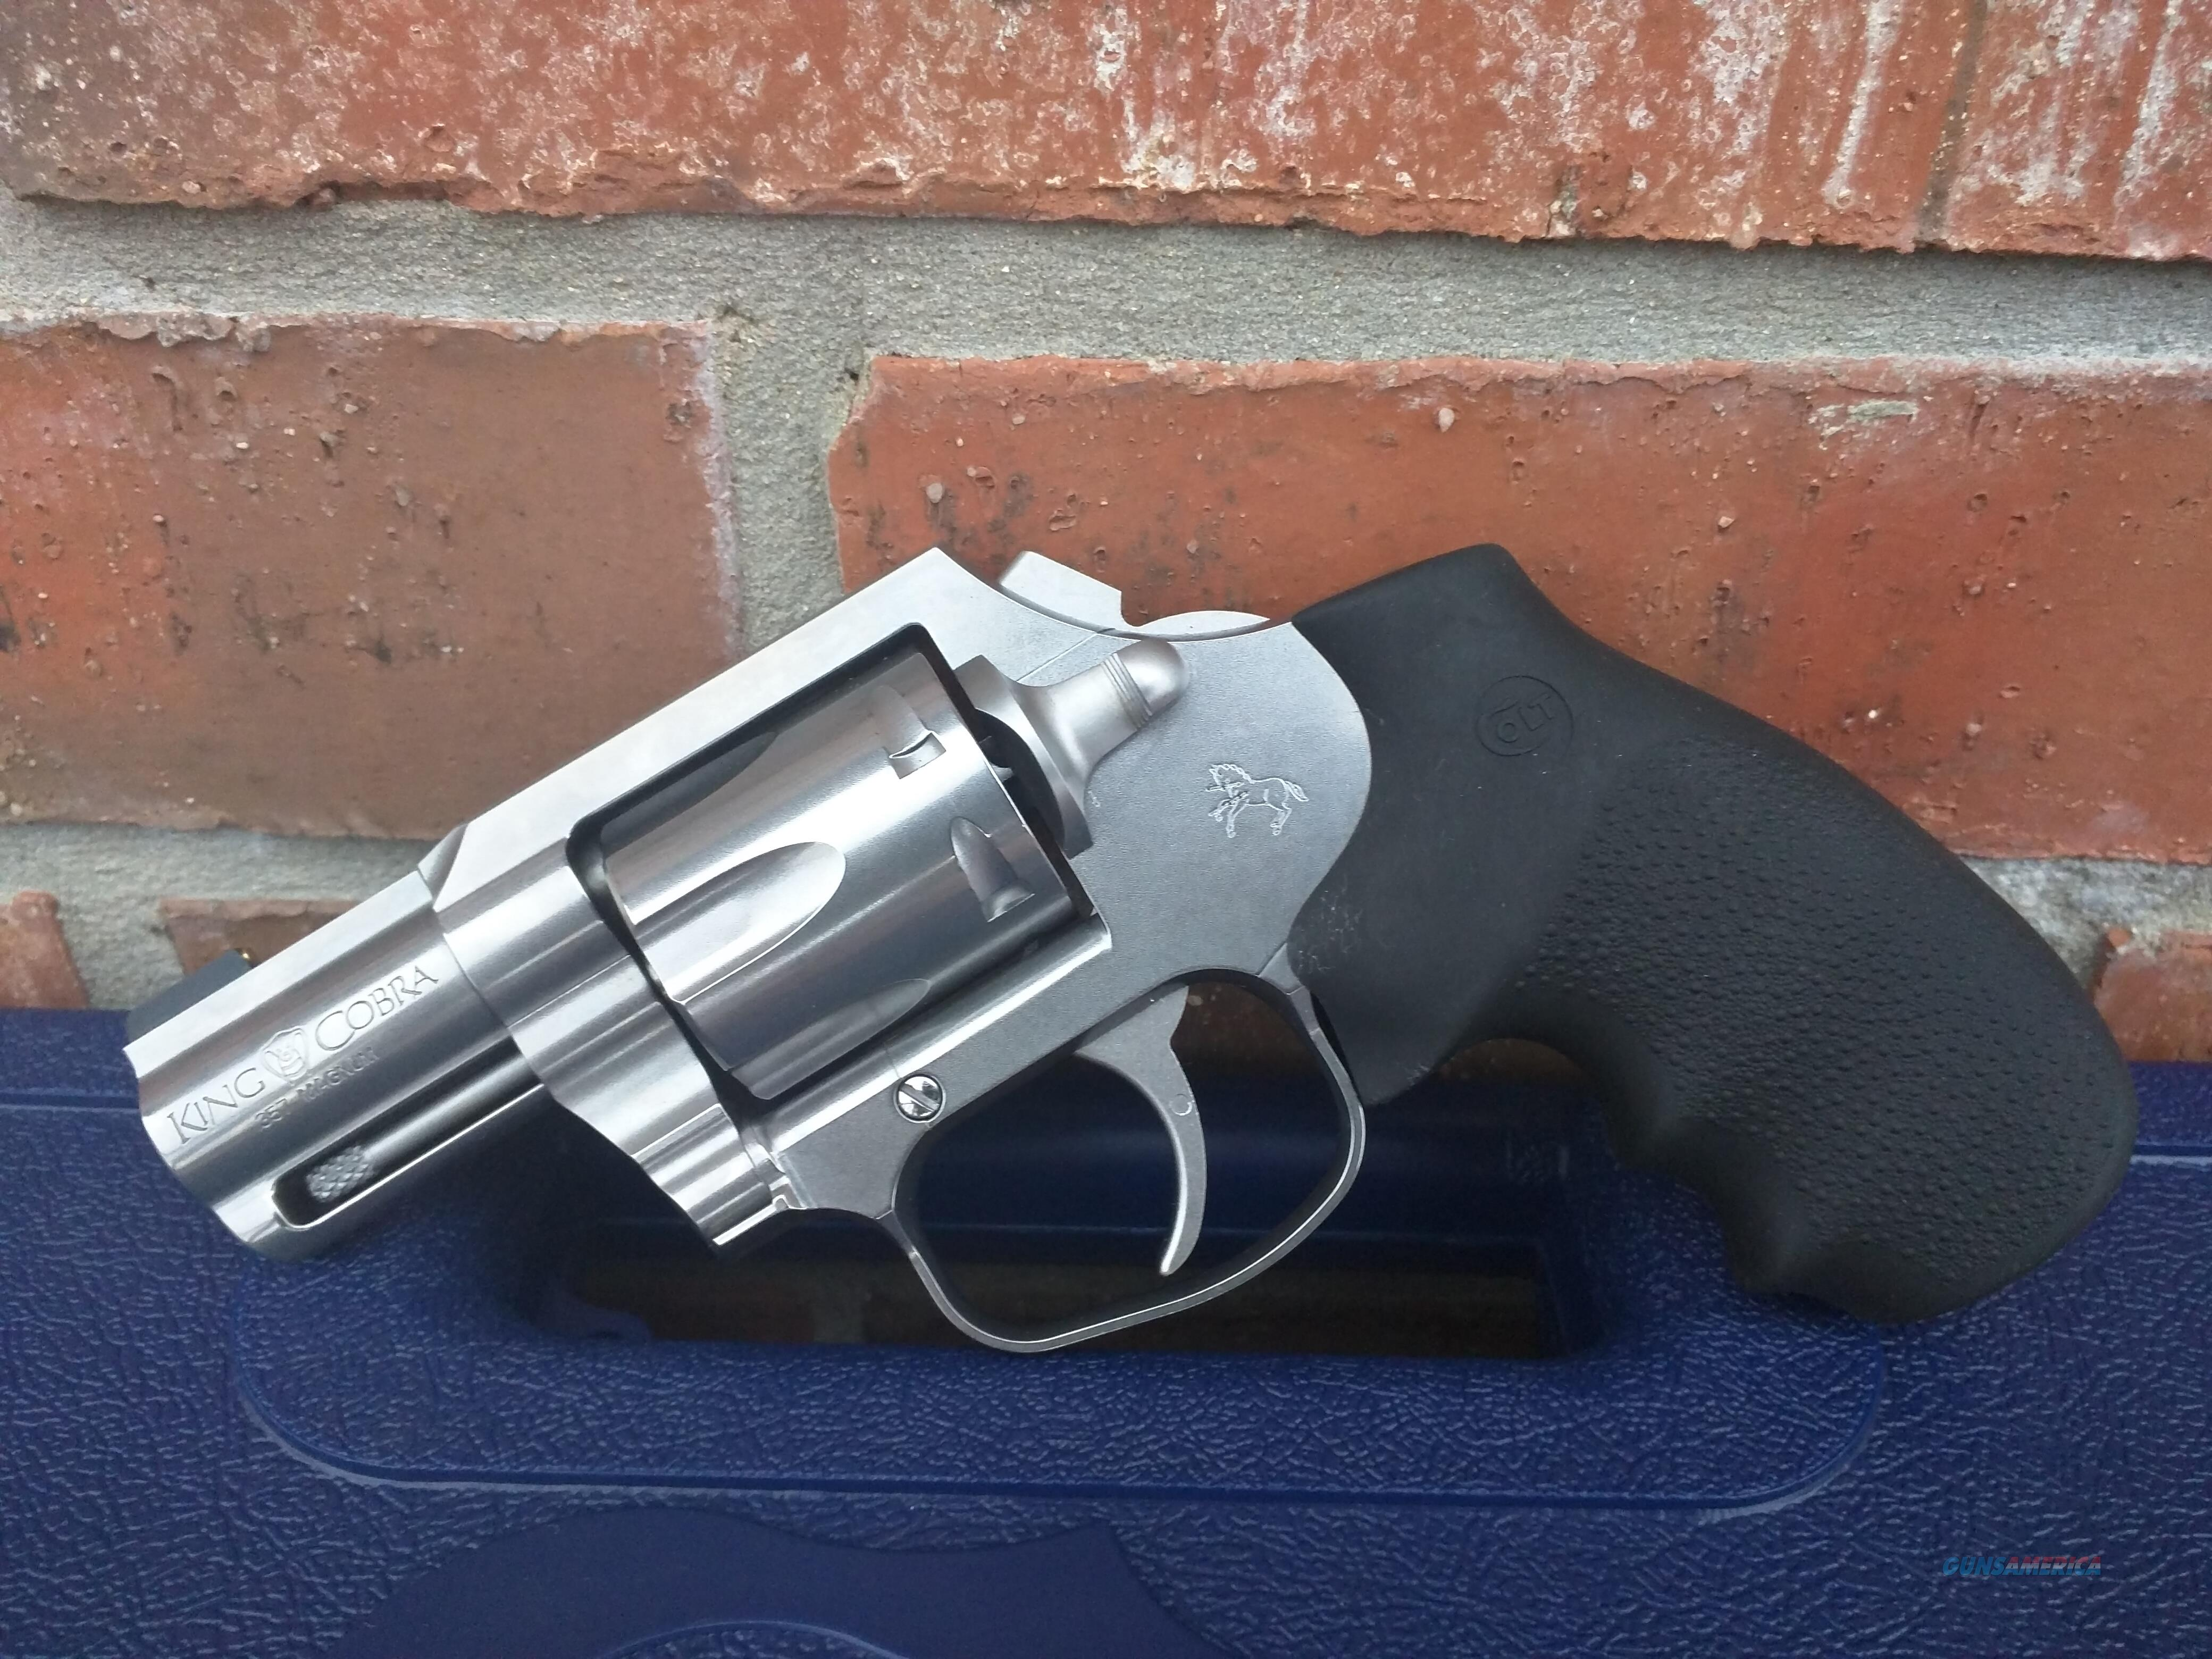 """Colt King Cobra .357 Mag/.38 Special, 6 Shot, 2"""" Barrel, Stainless Steel. THE KING IS BACK! FREE LAYAWAY  Guns > Pistols > Colt Double Action Revolvers- Modern"""